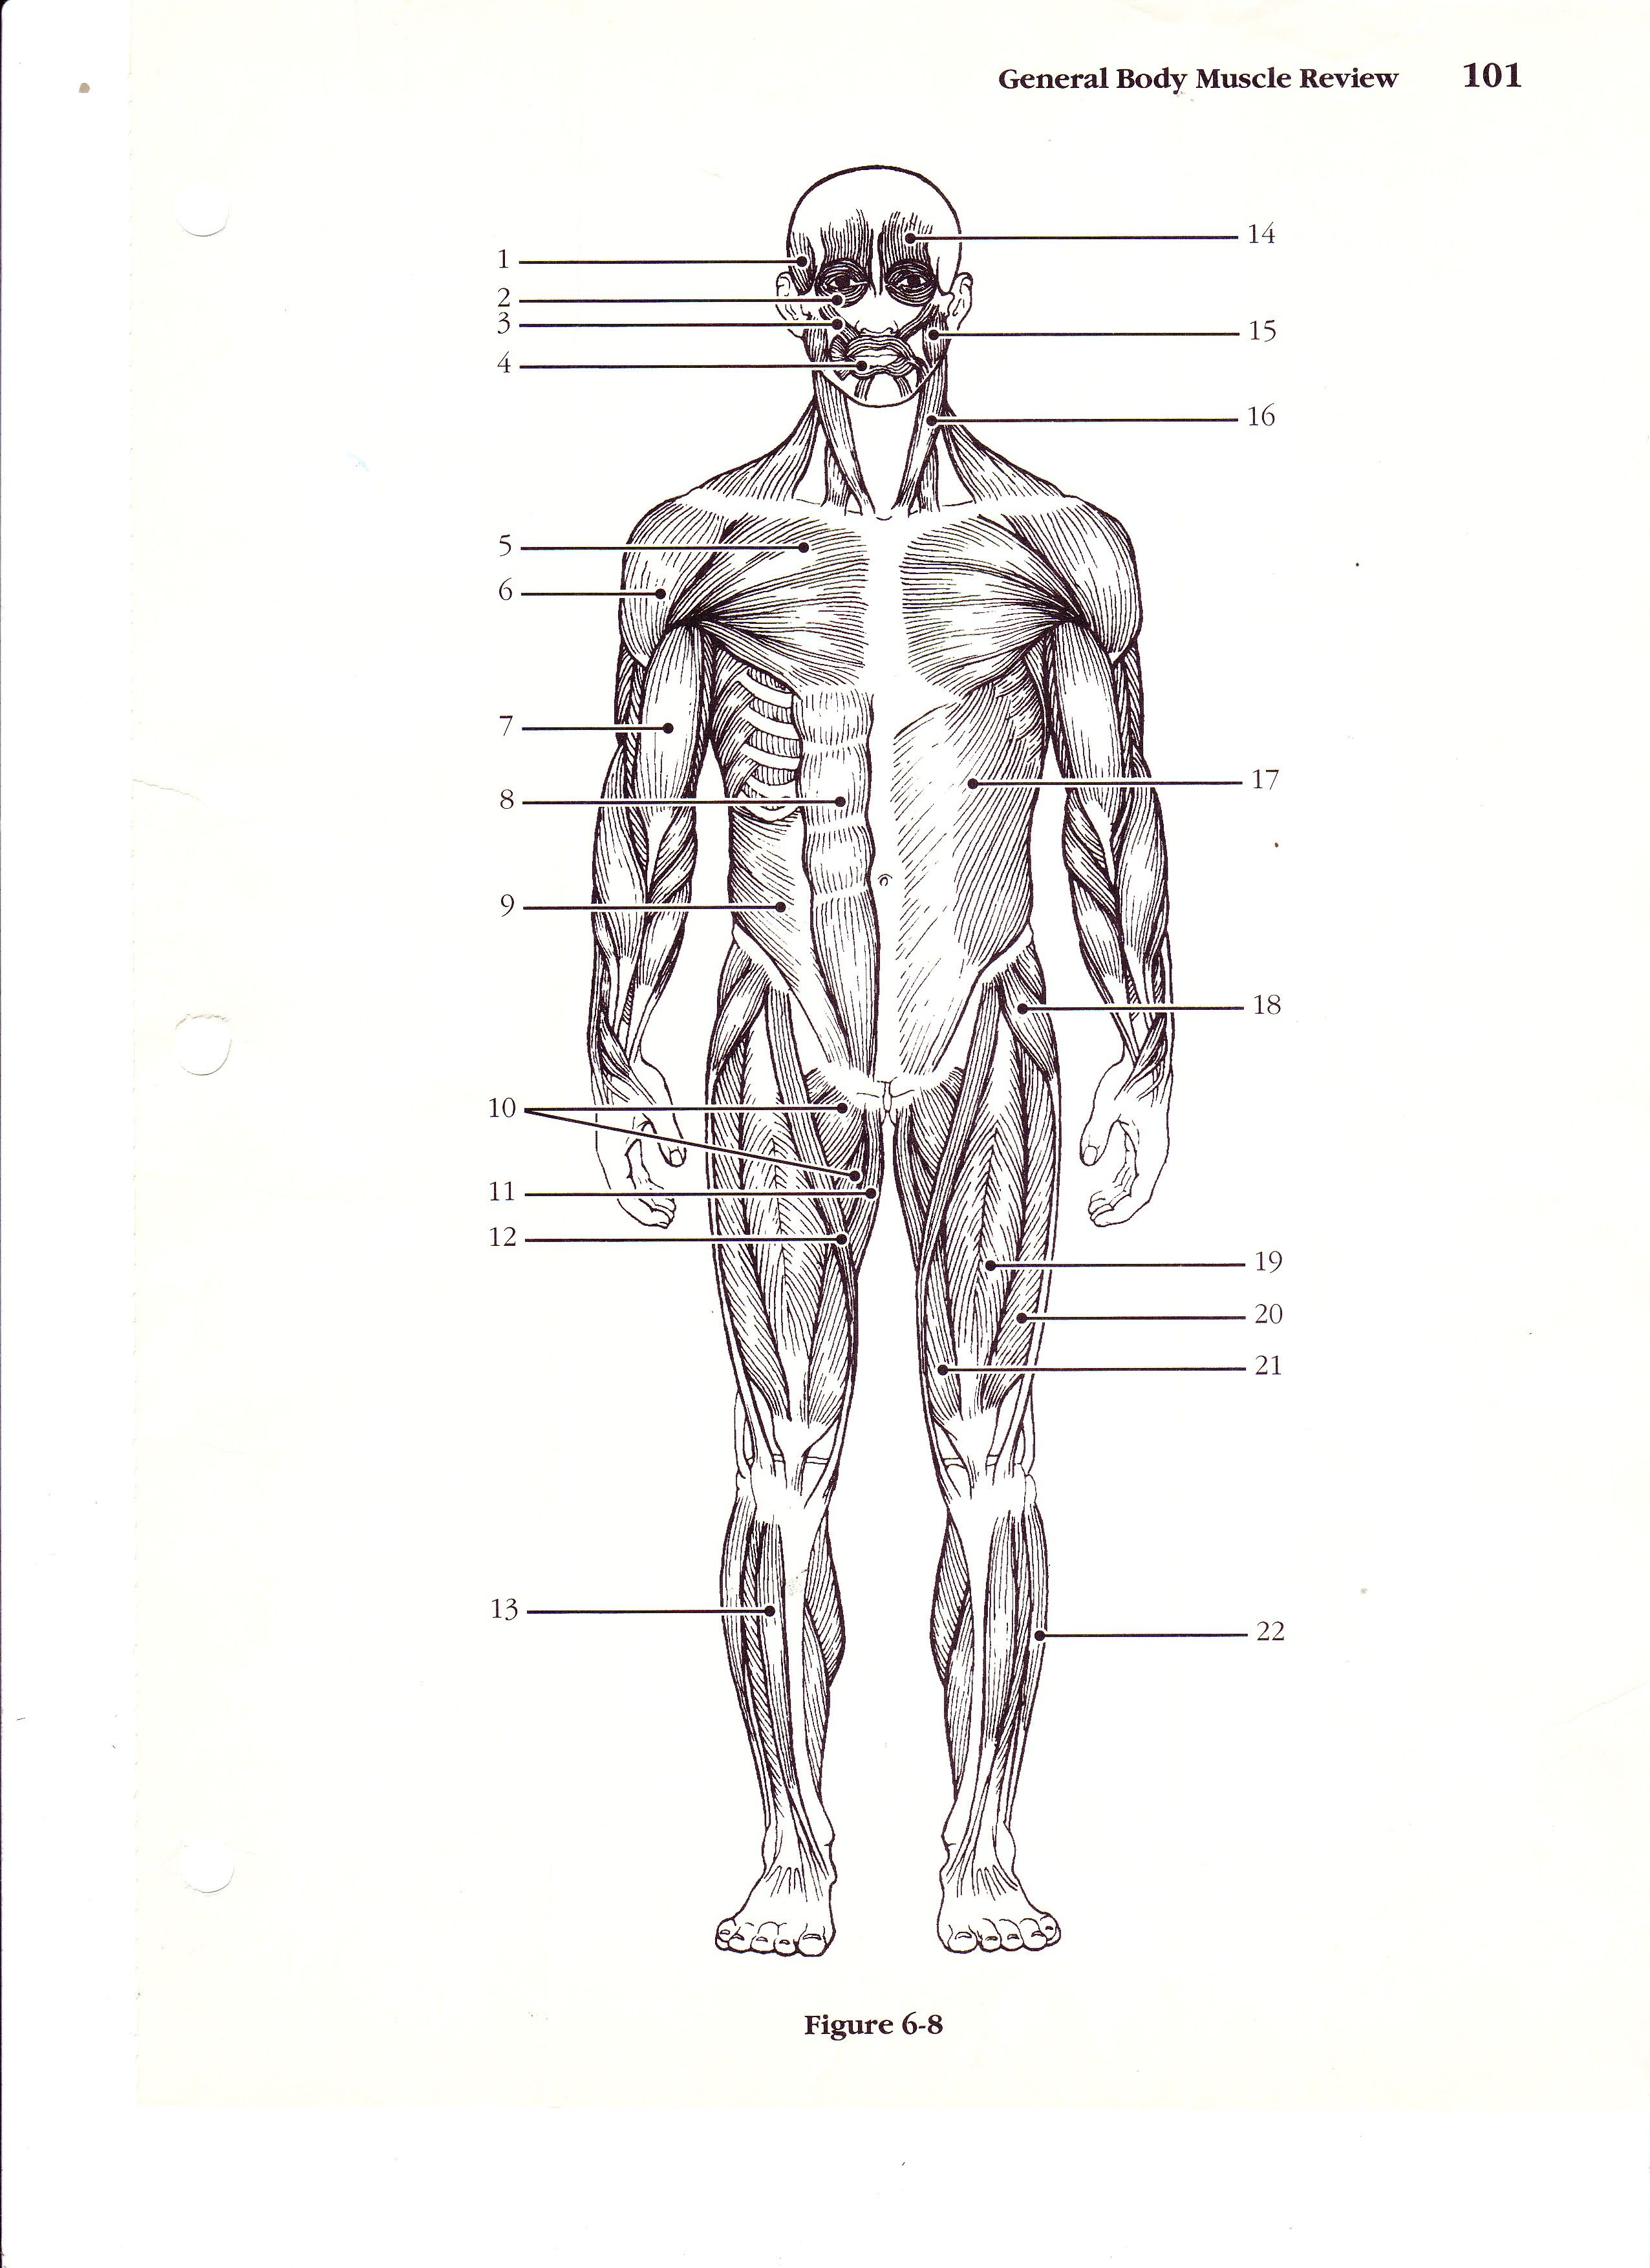 muscle diagrams to label localprivate muscles [ 2552 x 3508 Pixel ]